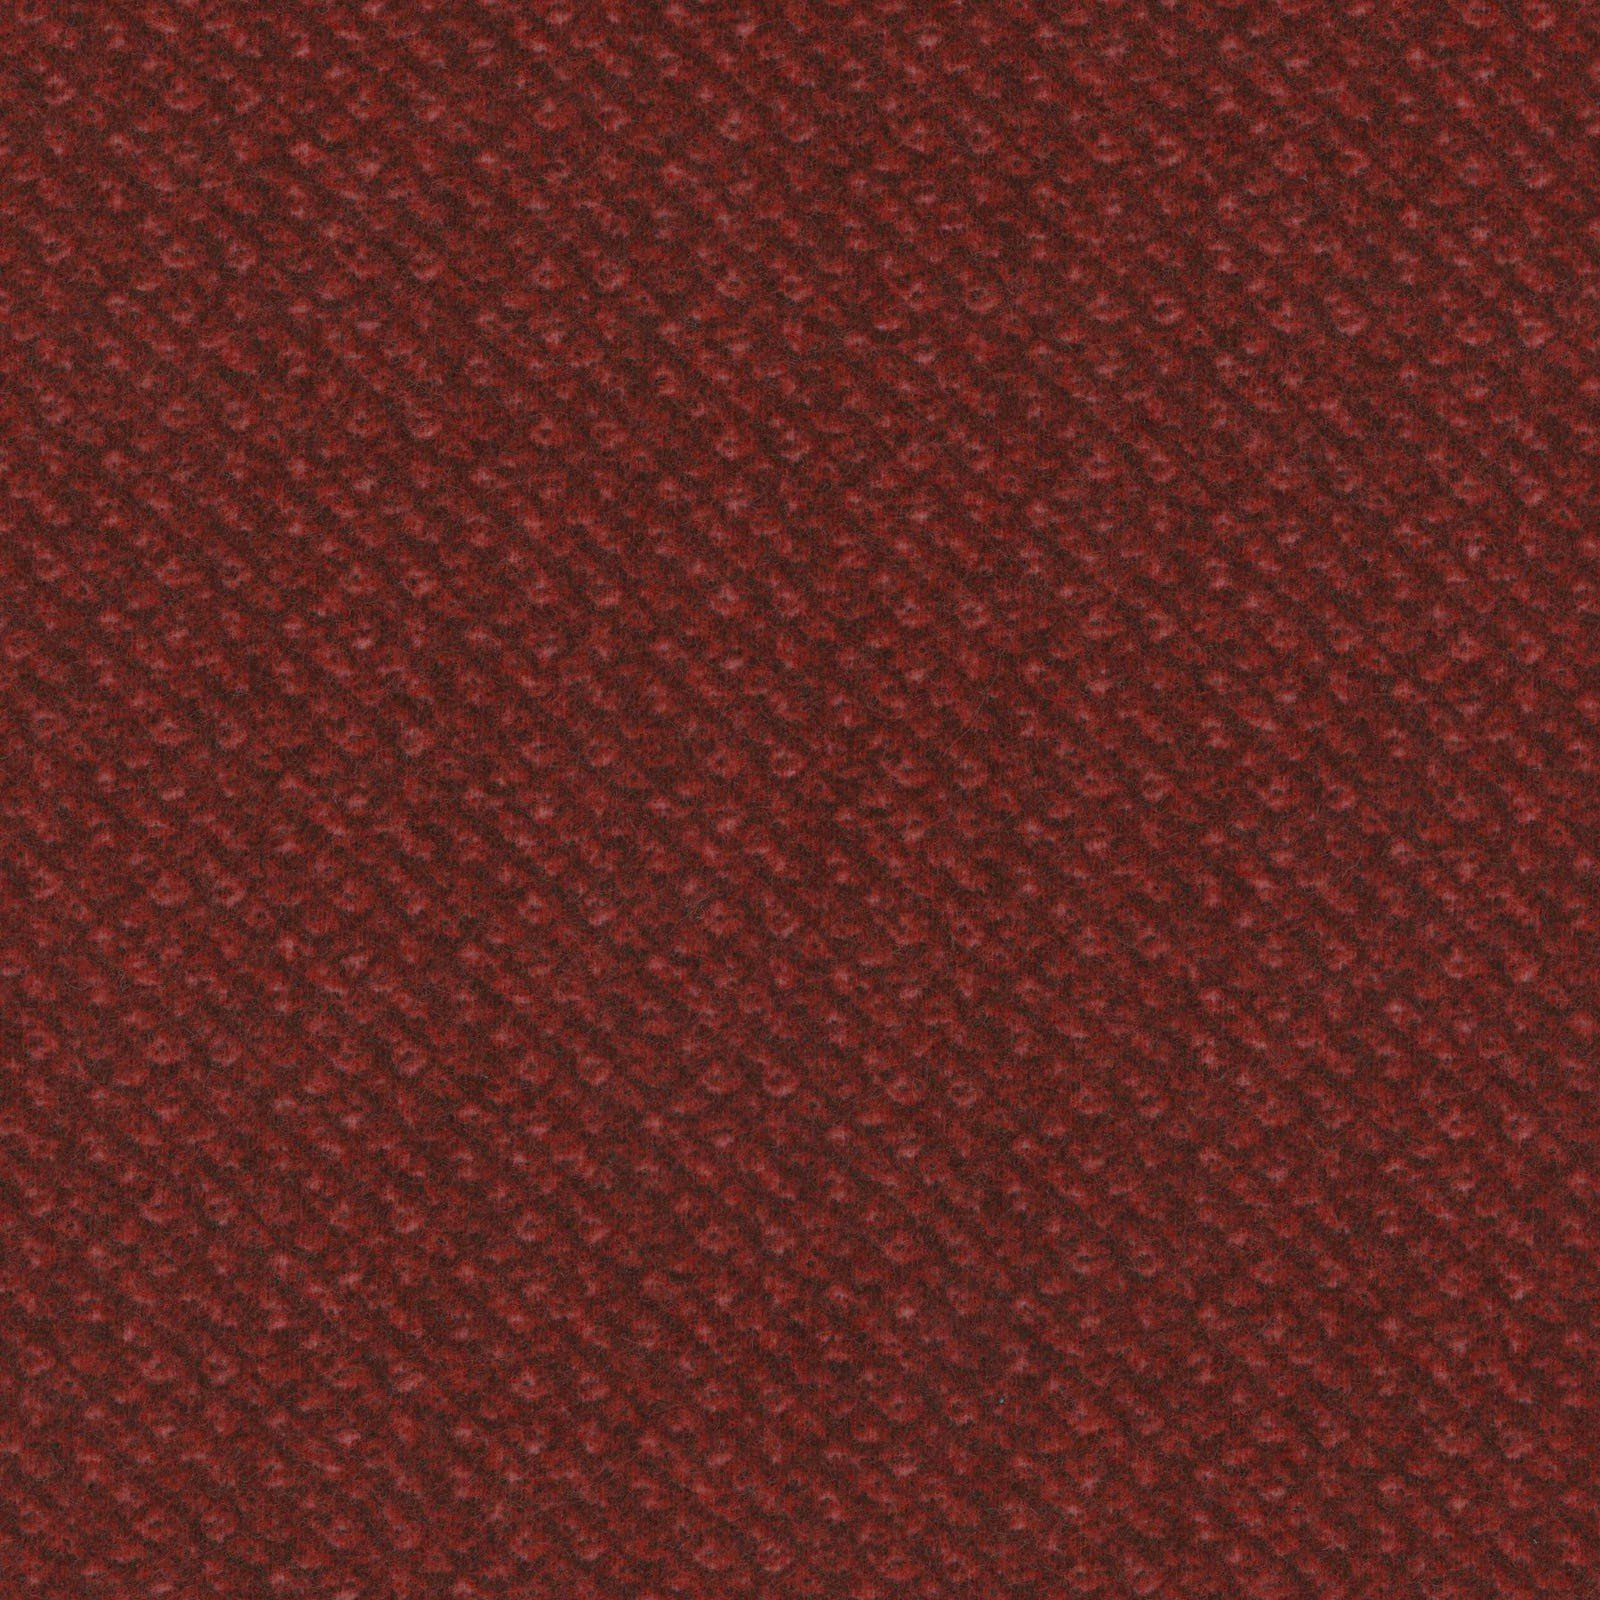 Woolies Flannel Poodle Boucle Red (MASF18505-R)